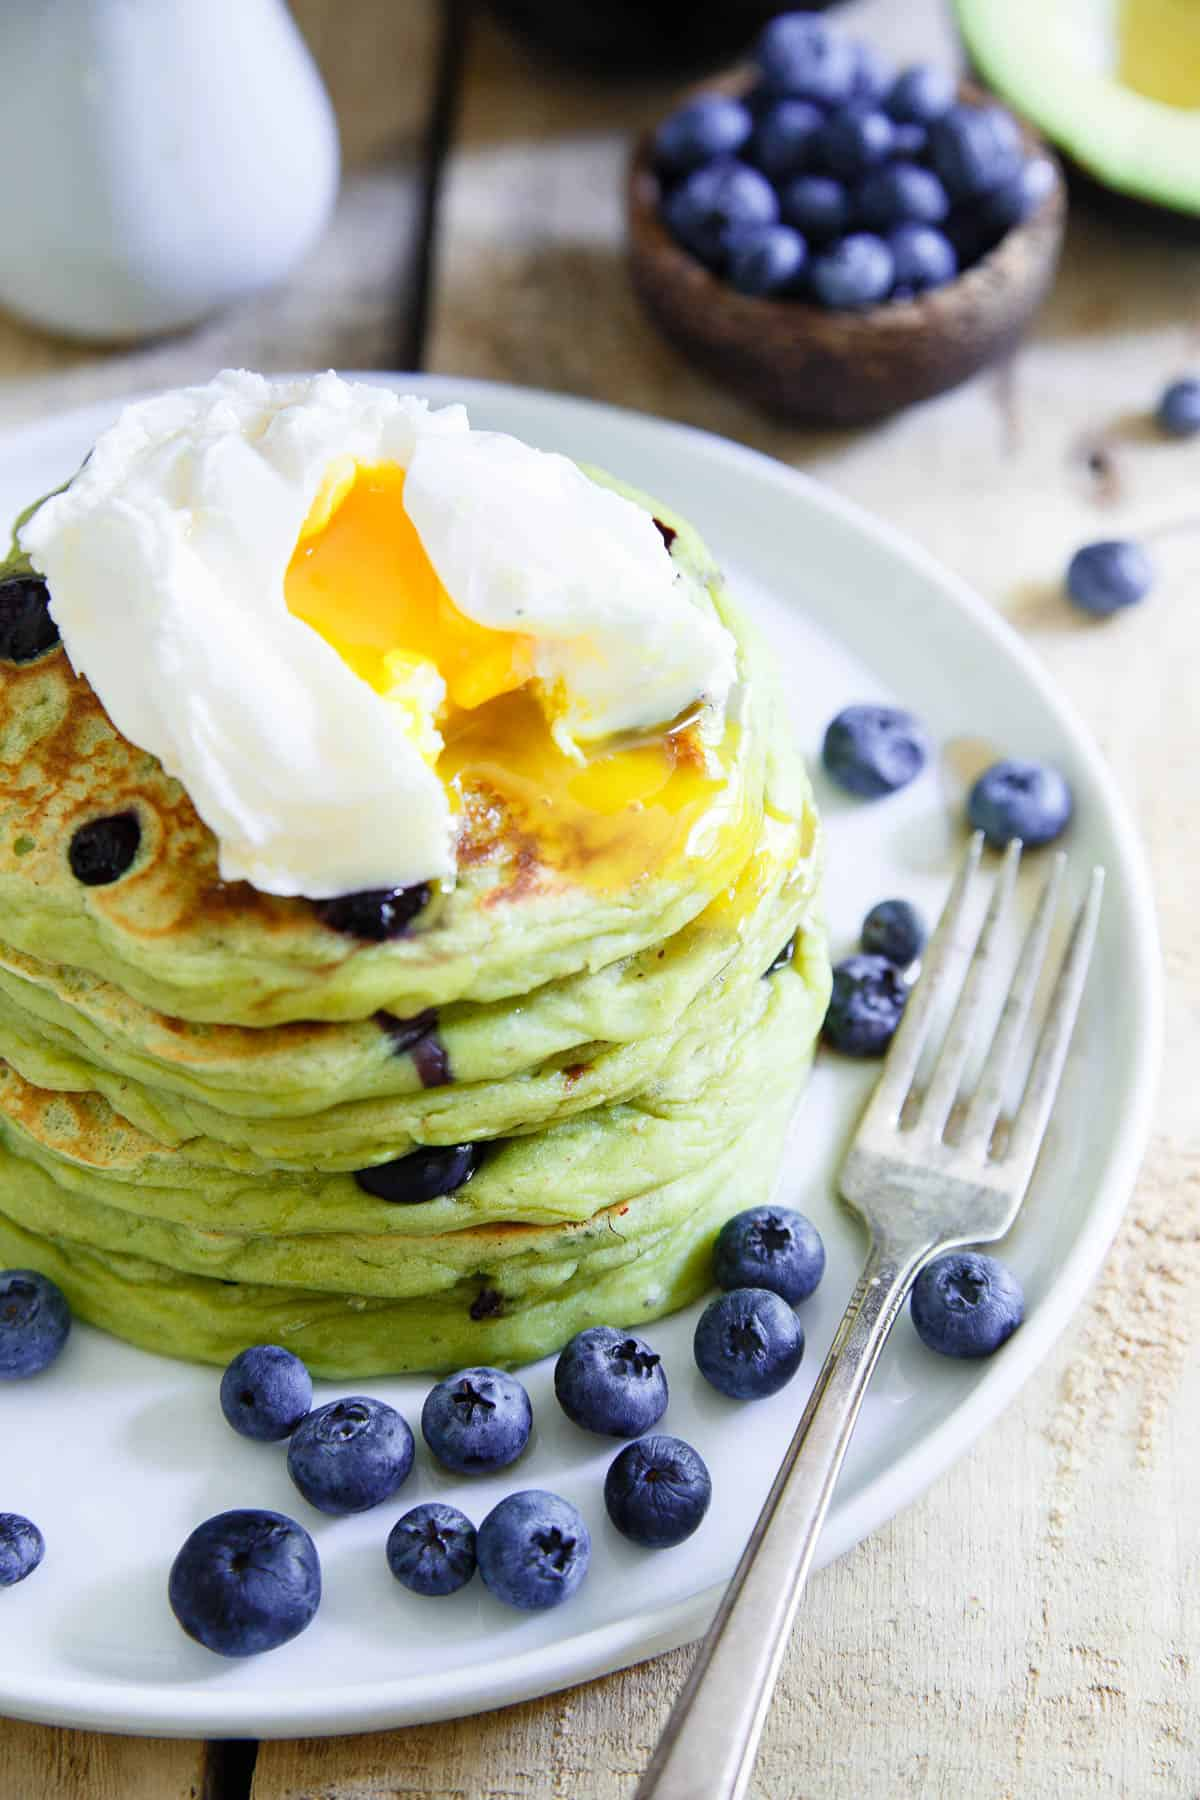 Blueberry Avocado Pancakes made with ripe California Avocados are the perfect start to the day.